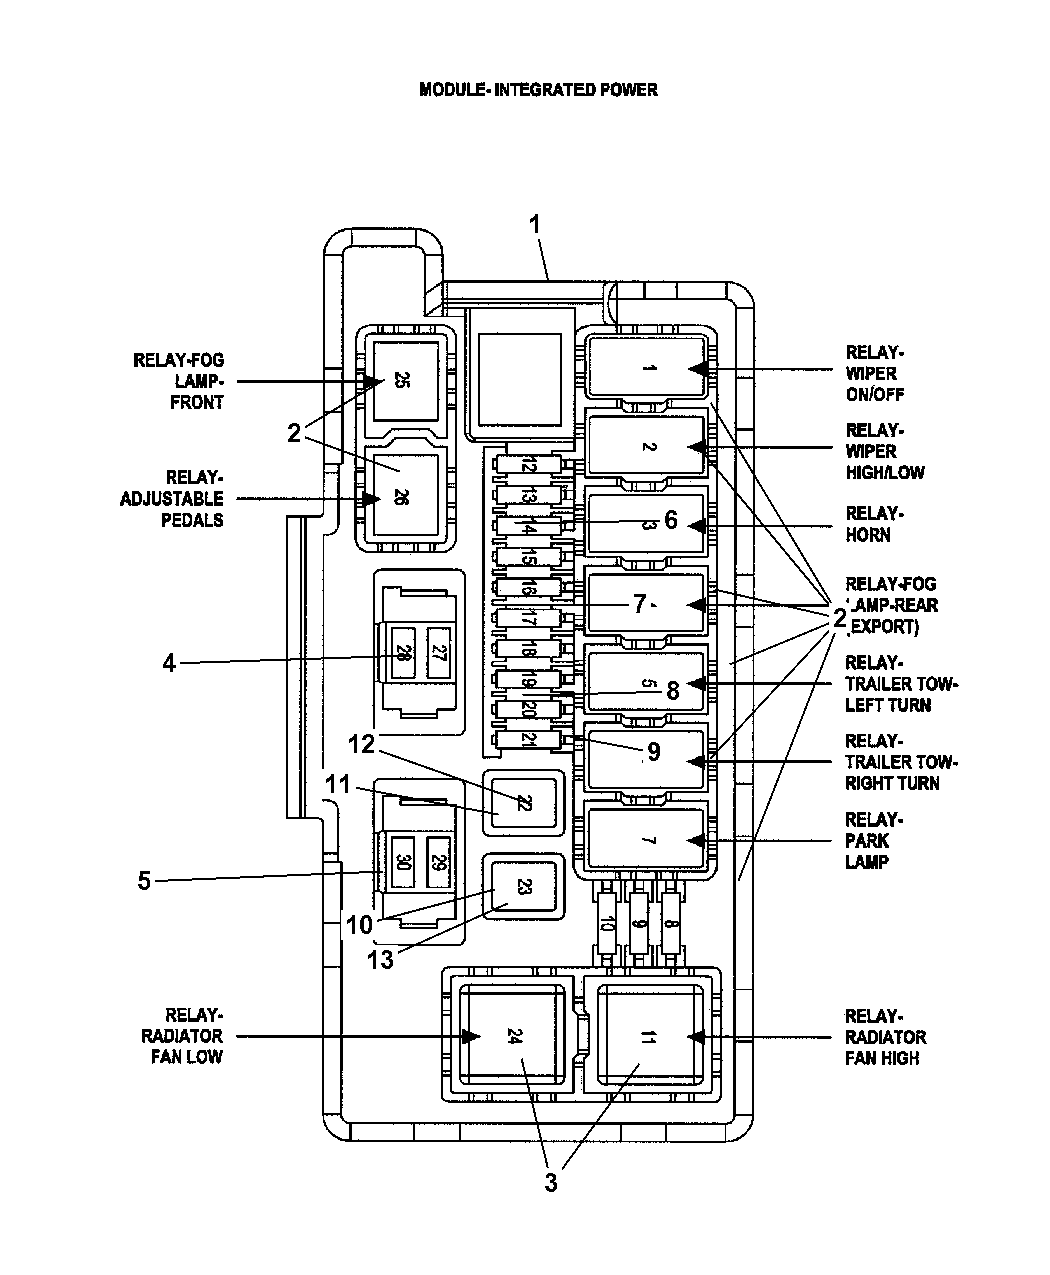 [QMVU_8575]  2007 Jeep Commander Wiring Diagram - 1973 El Camino Fuse Box for Wiring  Diagram Schematics | 2007 Jeep Commander Engine Diagram |  | Wiring Diagram Schematics